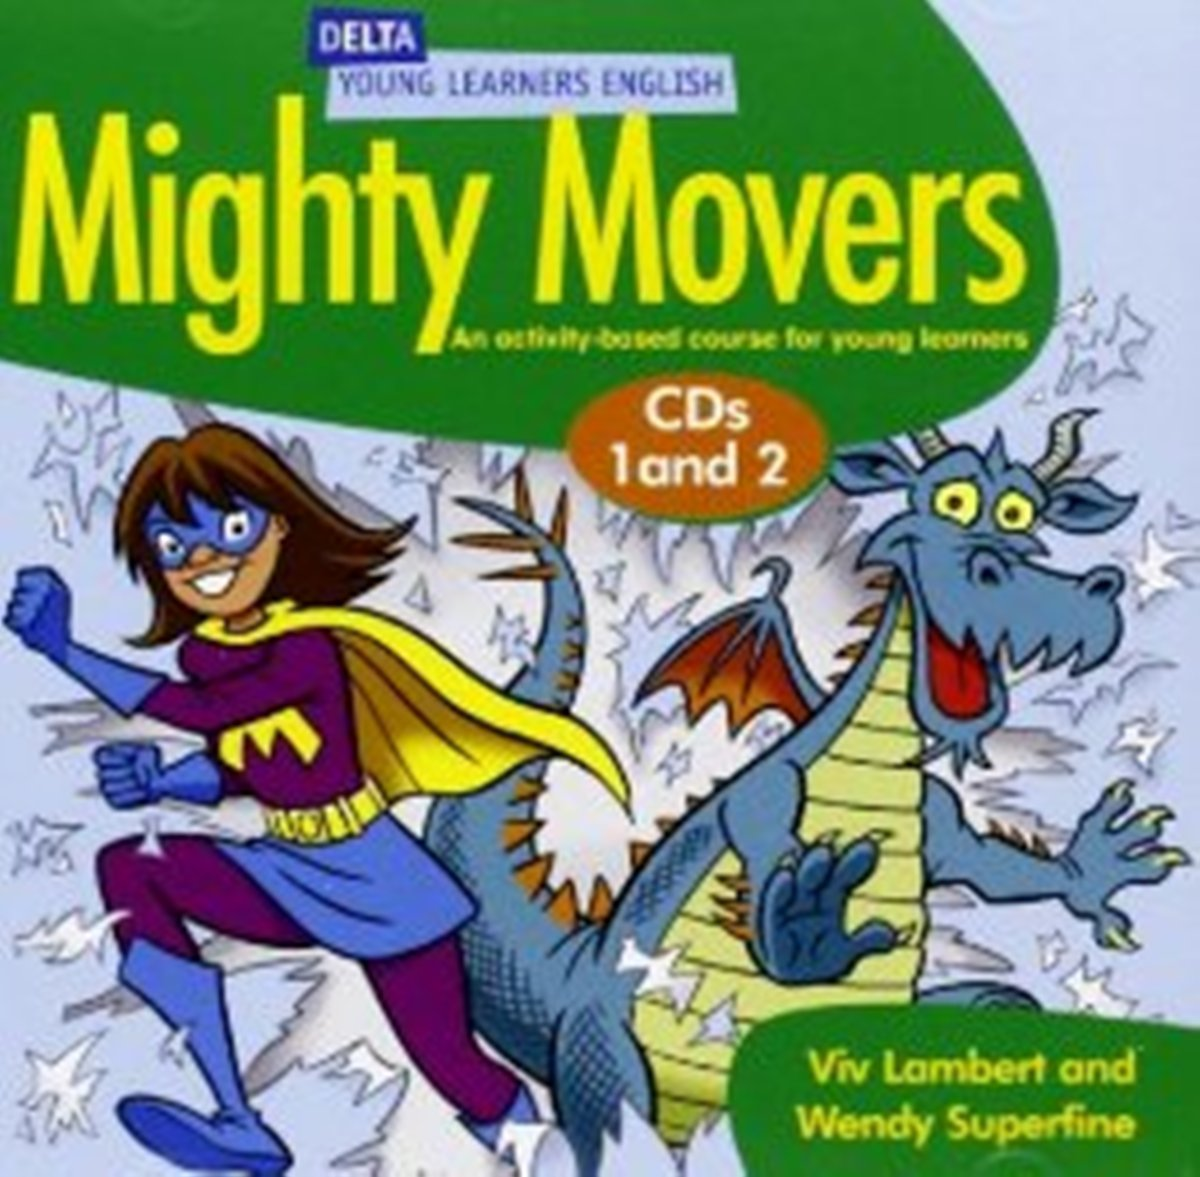 DELTA Mighty Movers: Audio CD(x2) team up 2 3 test resource audio cd